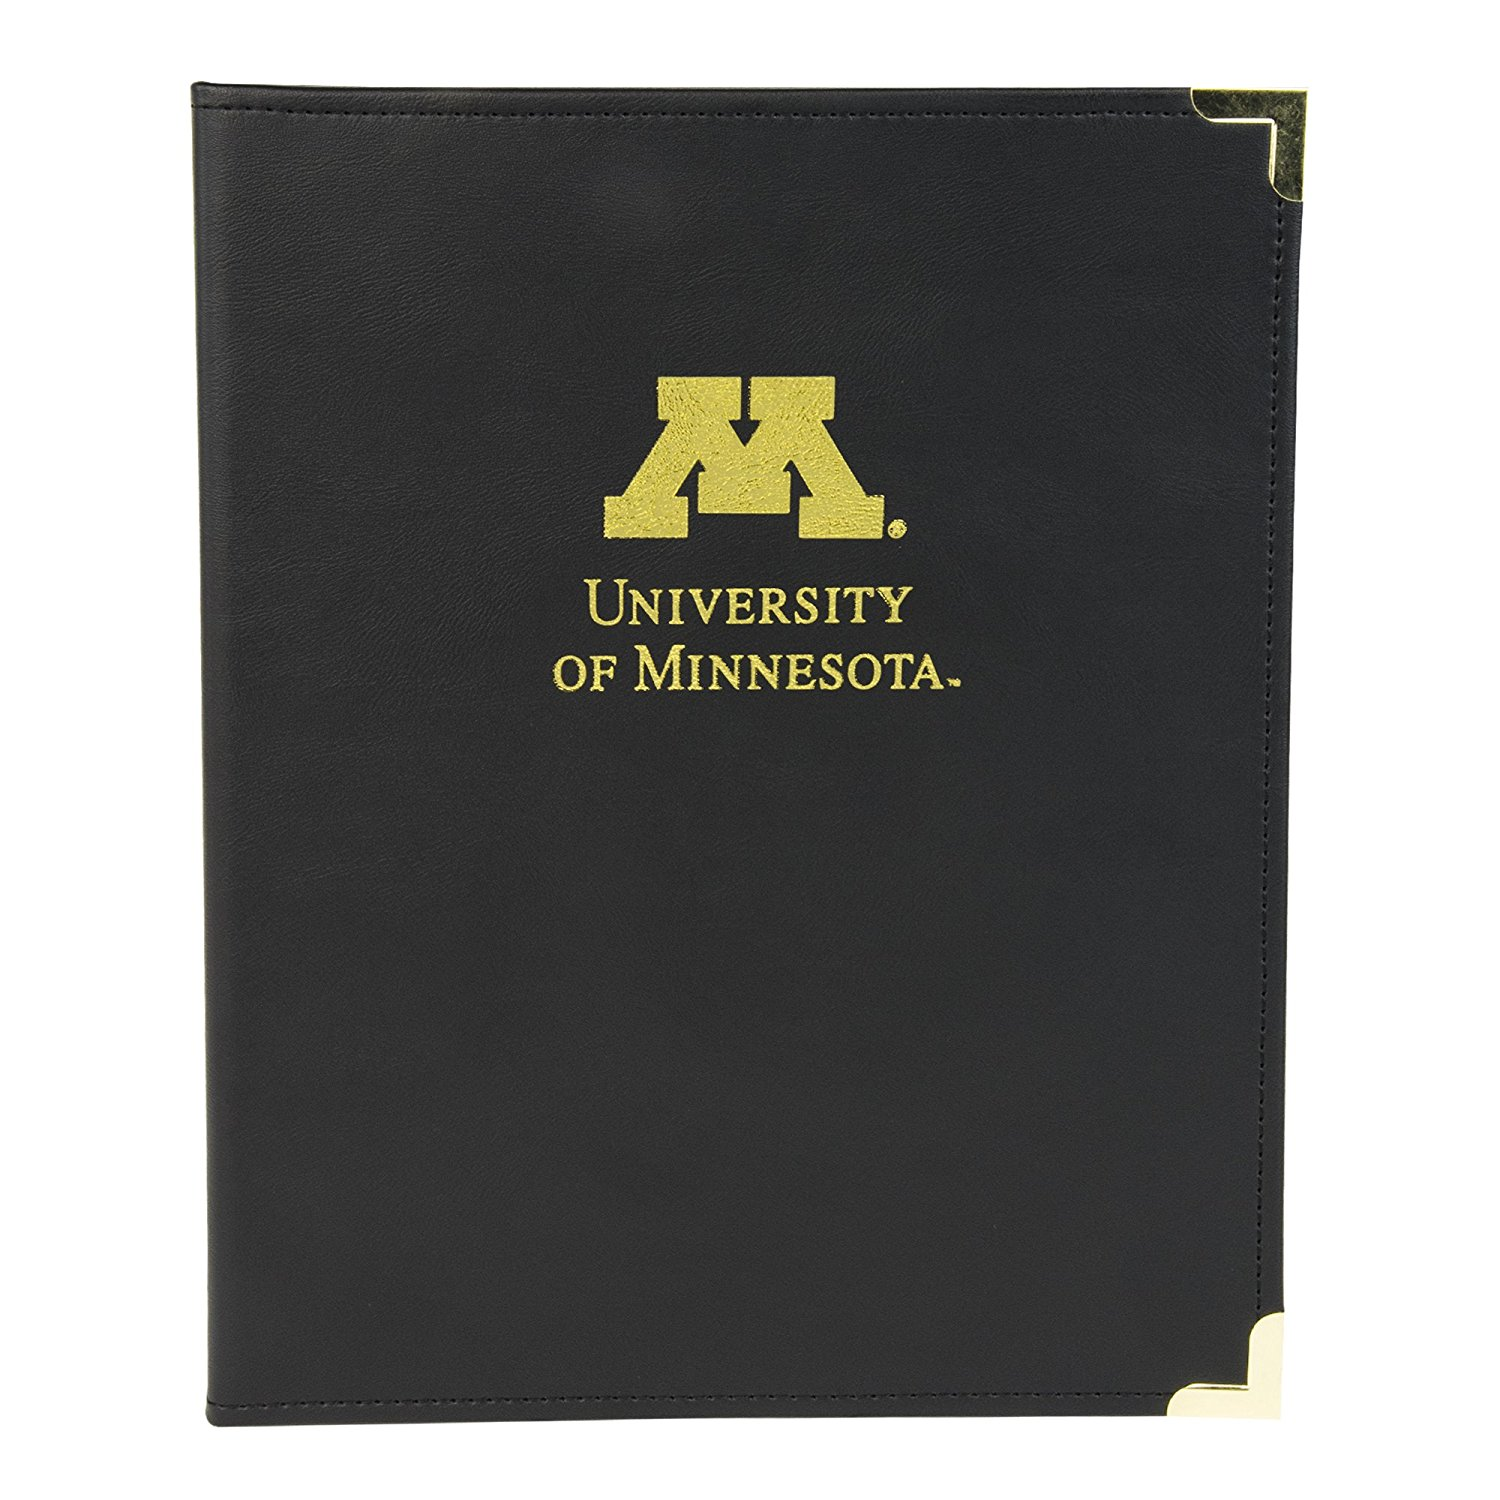 NCAA University of Minnesota Golden Gophers Business Portfolio with Brass Corners by Samsill